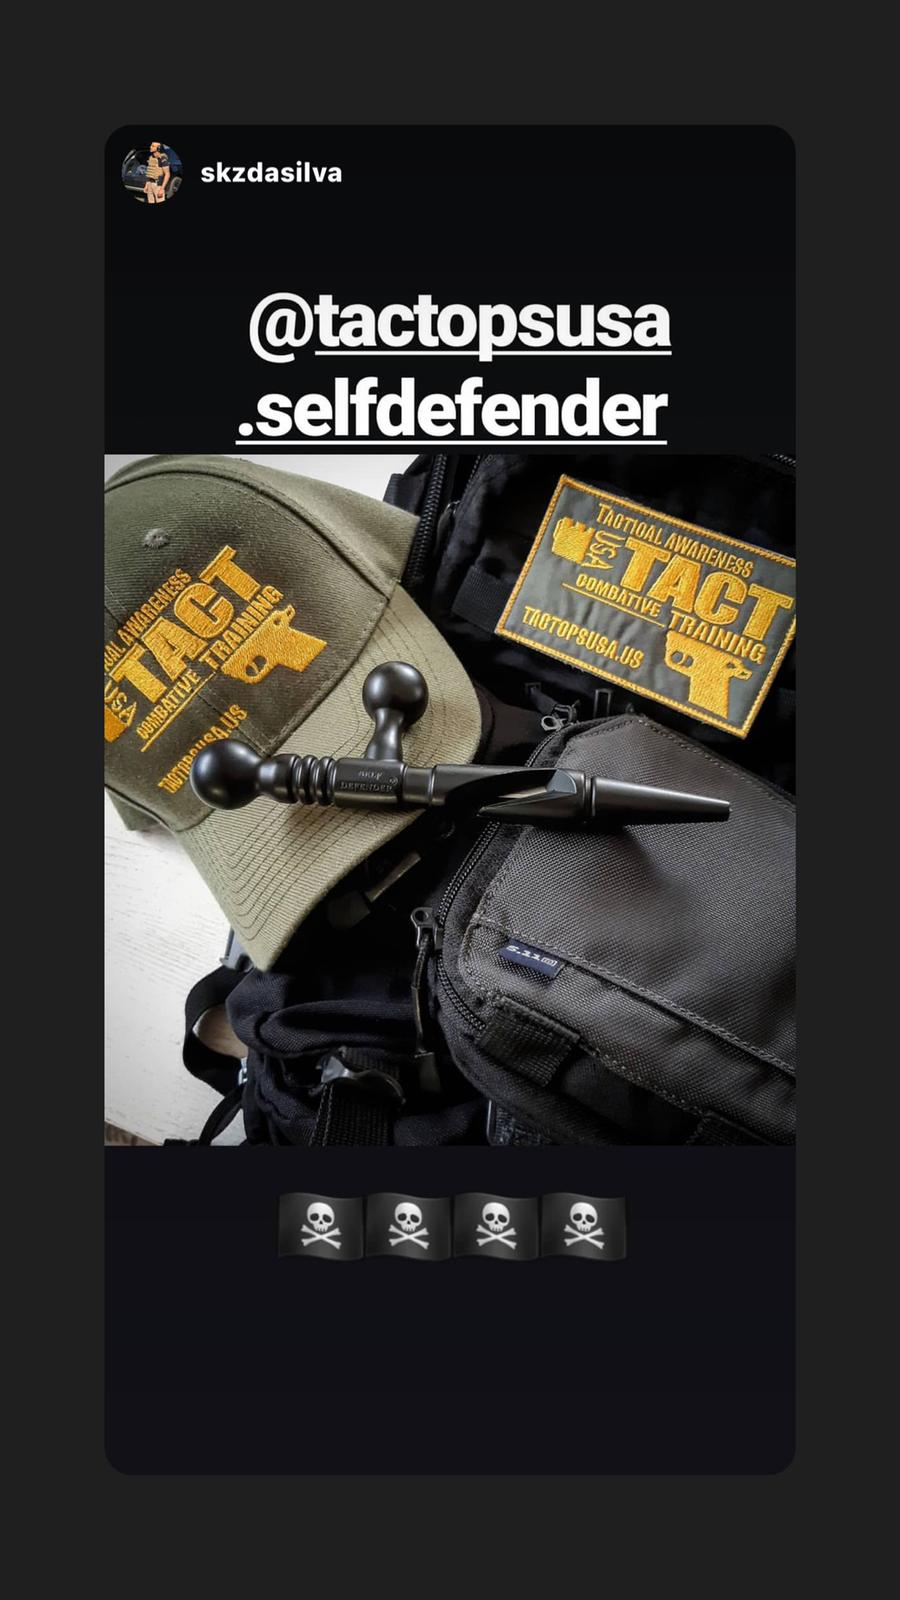 Best Self Defender Tactopsusa Security